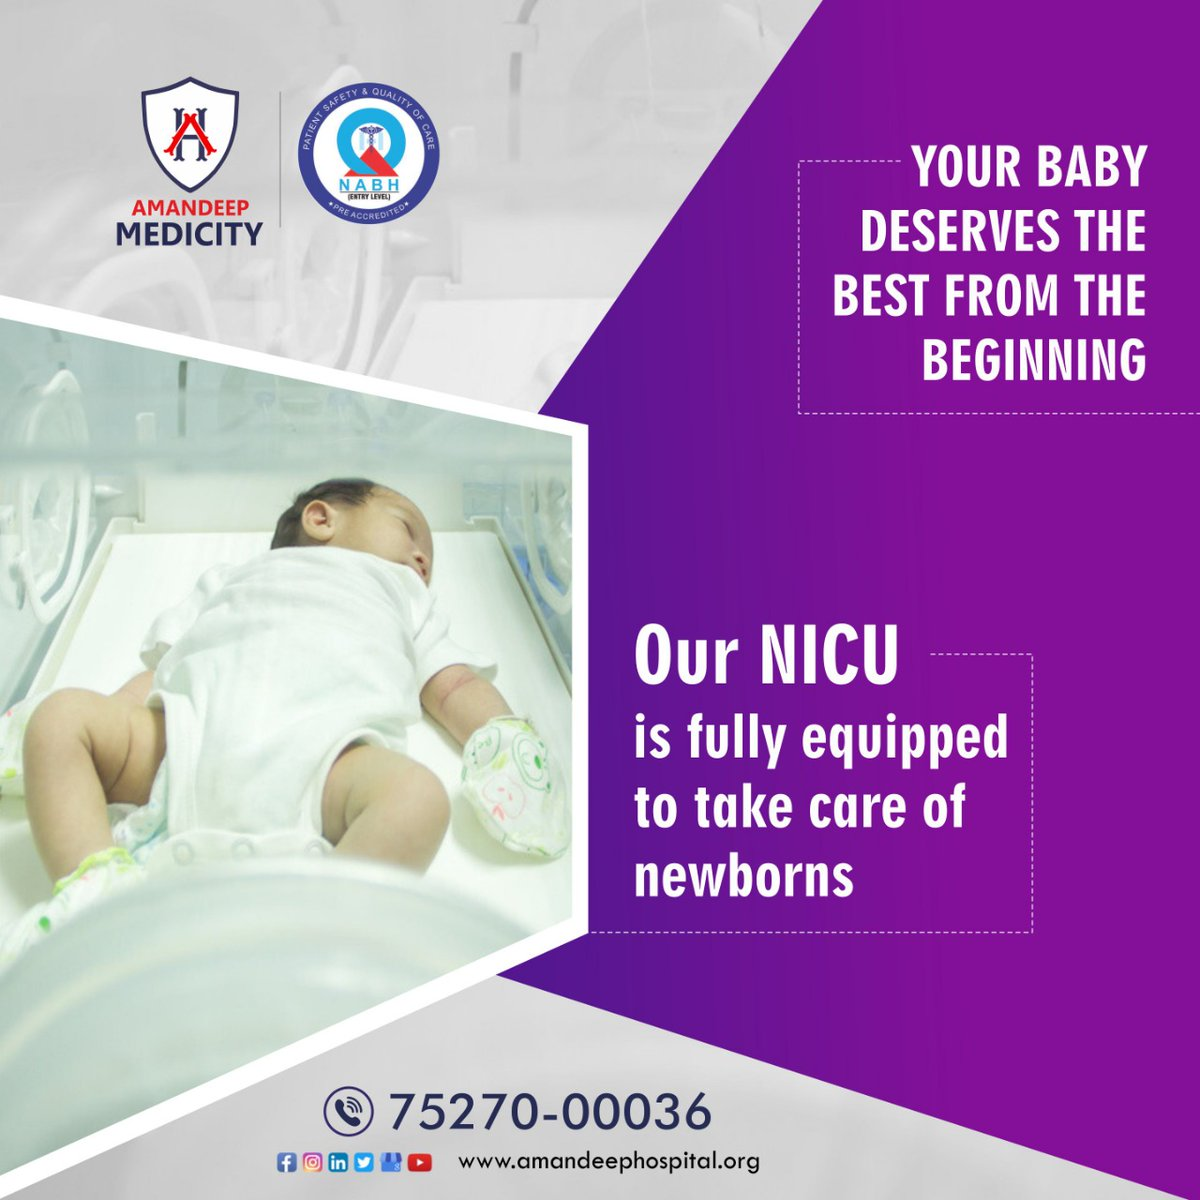 Every child deserves a healthy start to life! NICU professionals at Amandeep Medicity are committed to providing the best child health treatments that help #infants receive the care they truly deserve.  #amandeephospital #amandeepmedicity #paediatrics  #childcare https://t.co/w50yLBPmCa